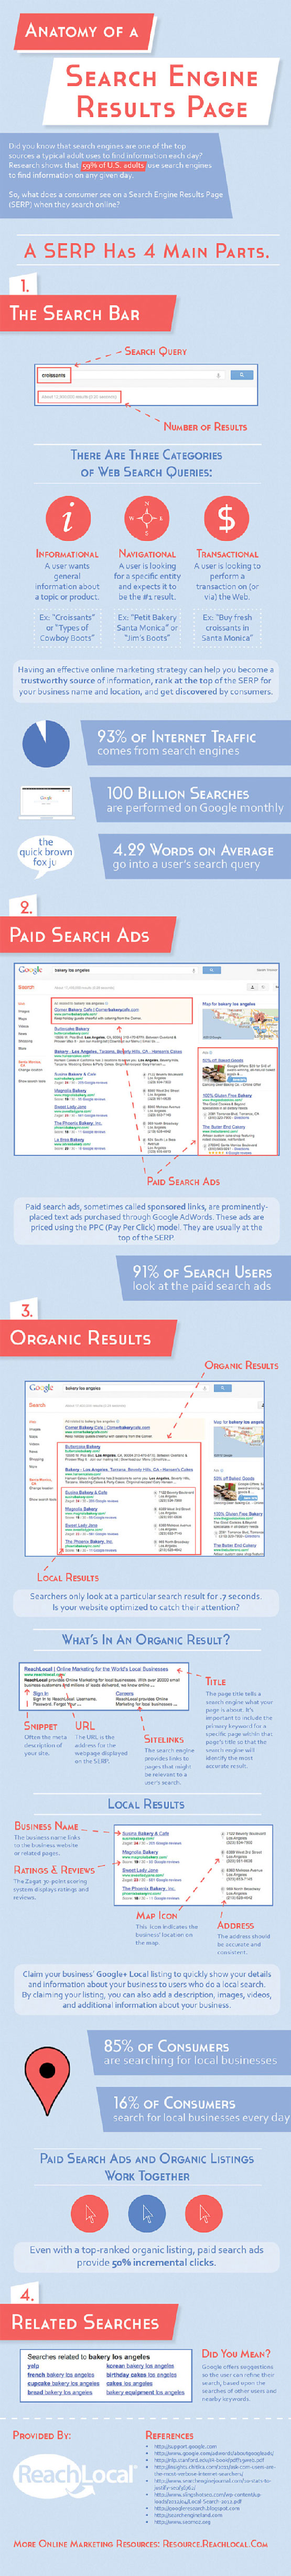 Google Search Anatomy-Infographic